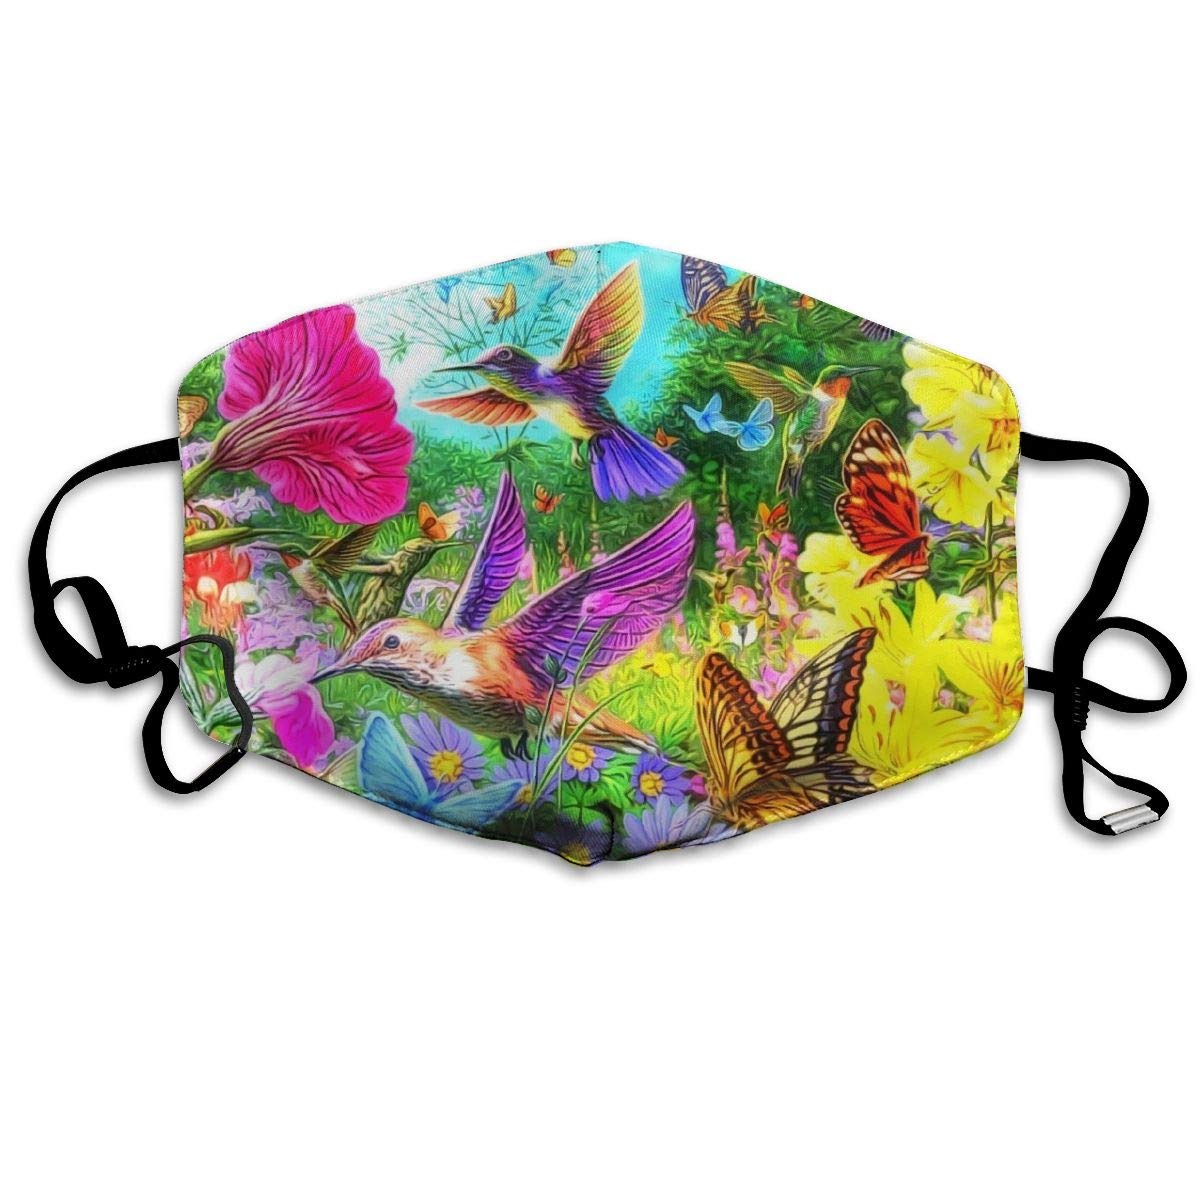 Hummingbird And Butterfly Washable Reusable   Mask, Cotton Anti Dust Half Face Mouth Mask For Kids Teens Men Women With